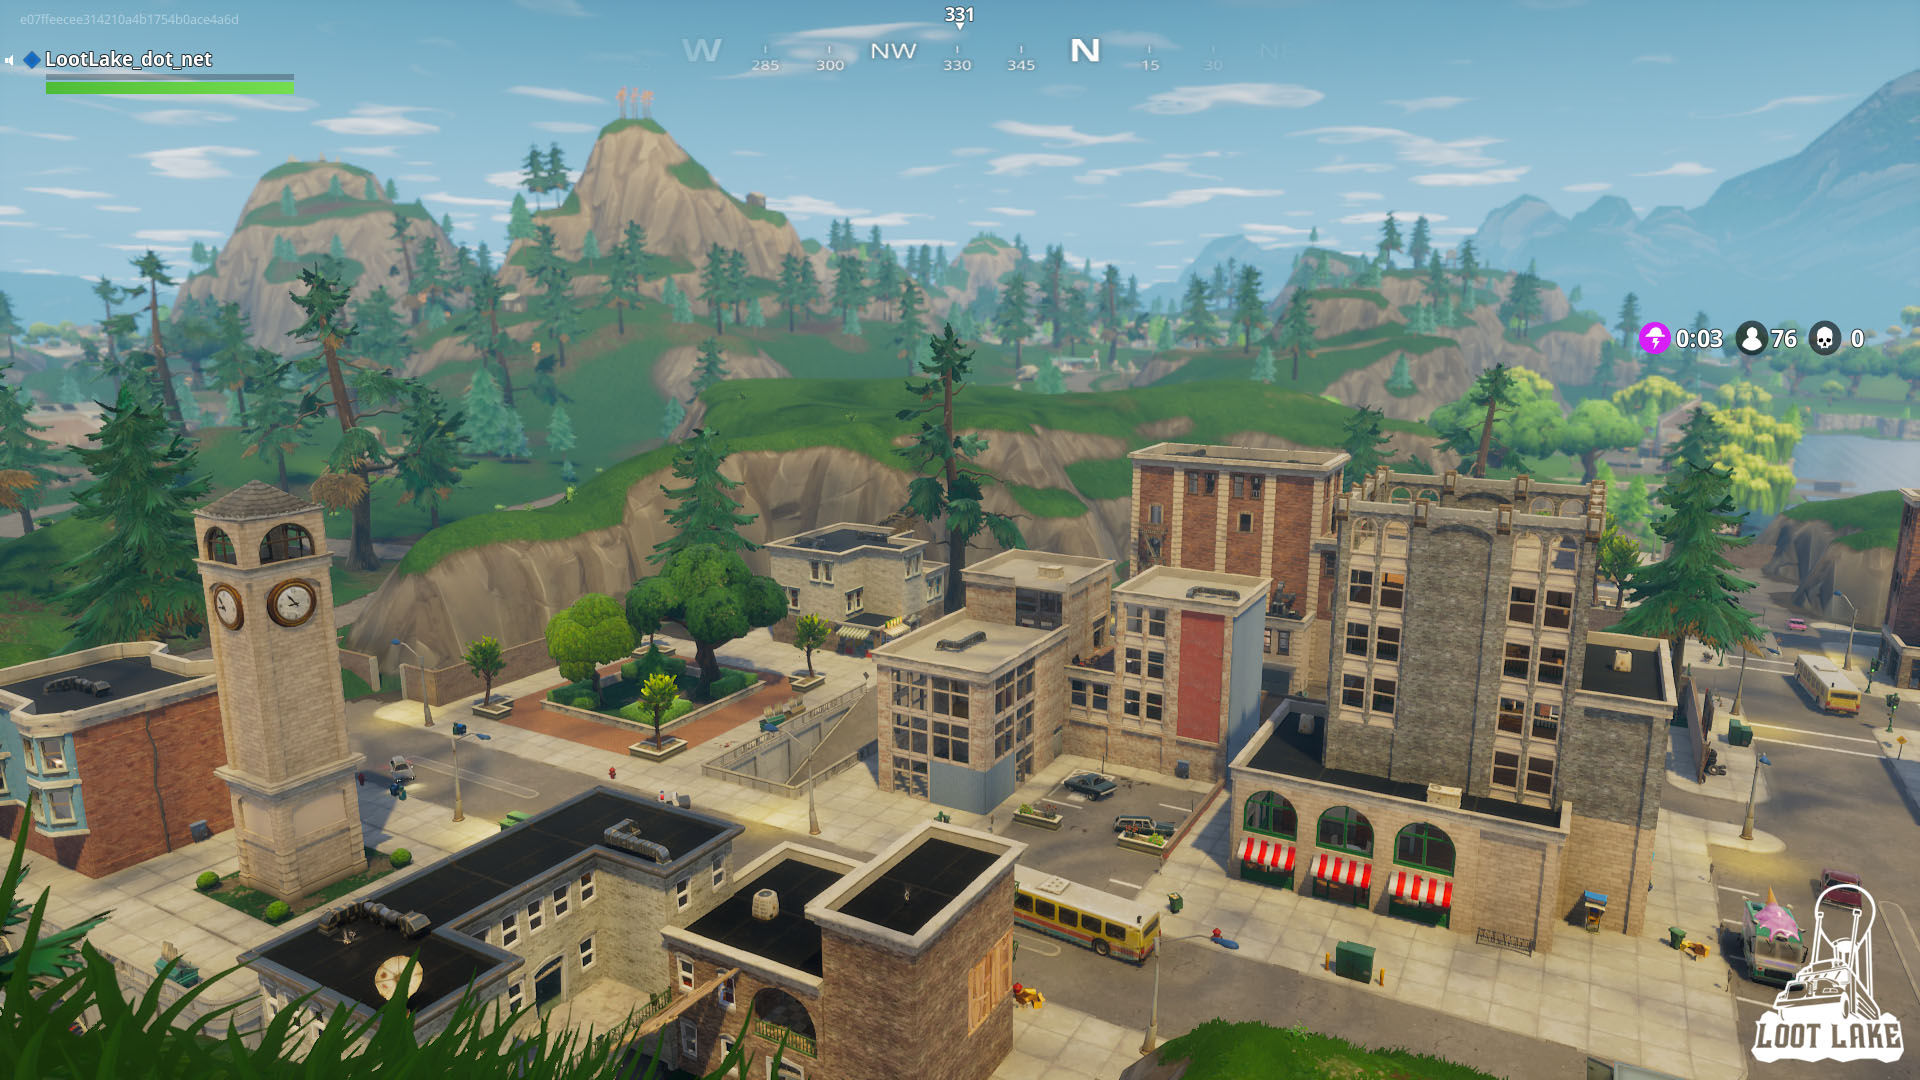 Tilted-Towers-1 - Tilted-Towers-1